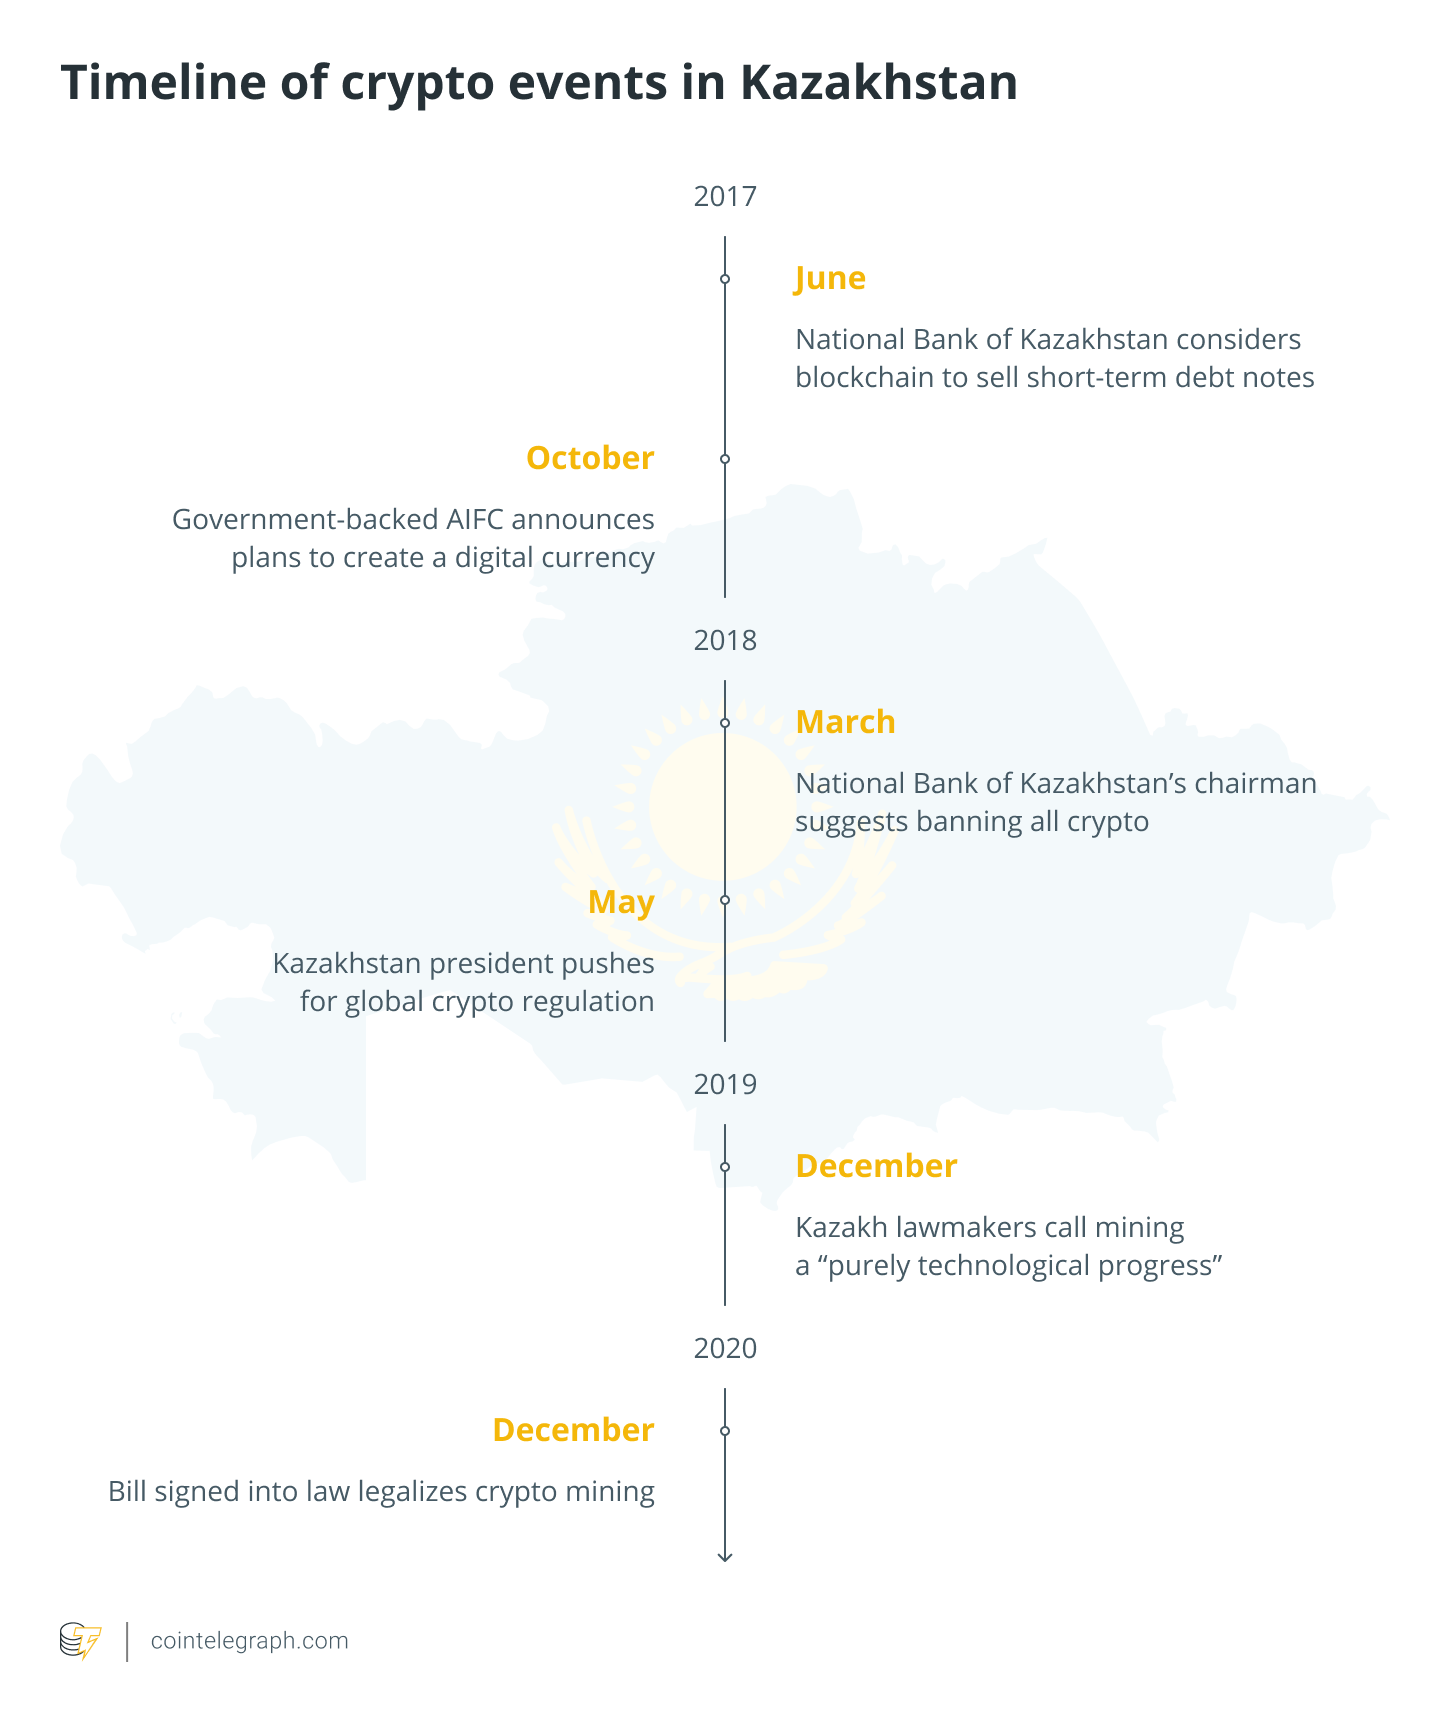 Timeline of crypto events in Kazakhstan